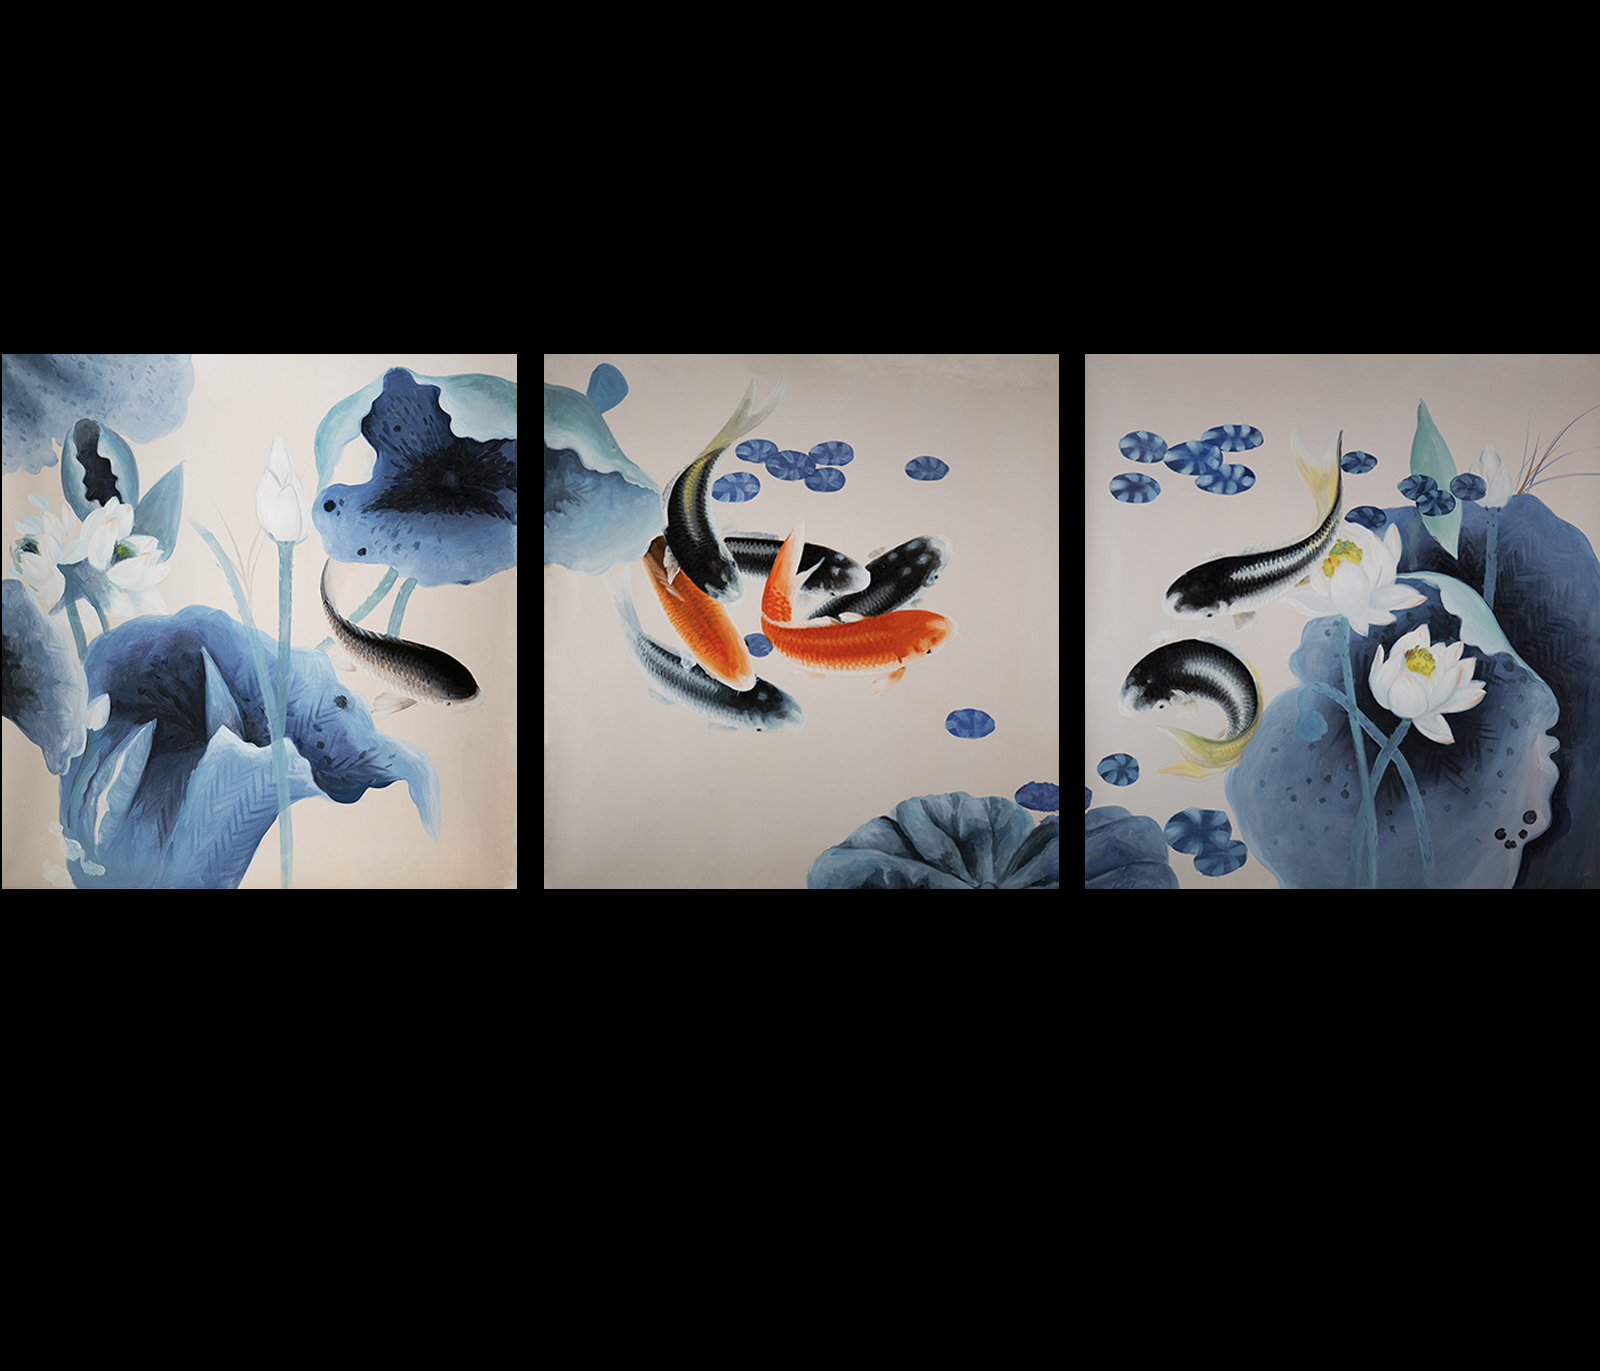 Koi fish painting contemporary art modern wall art d cor for Koi canvas print